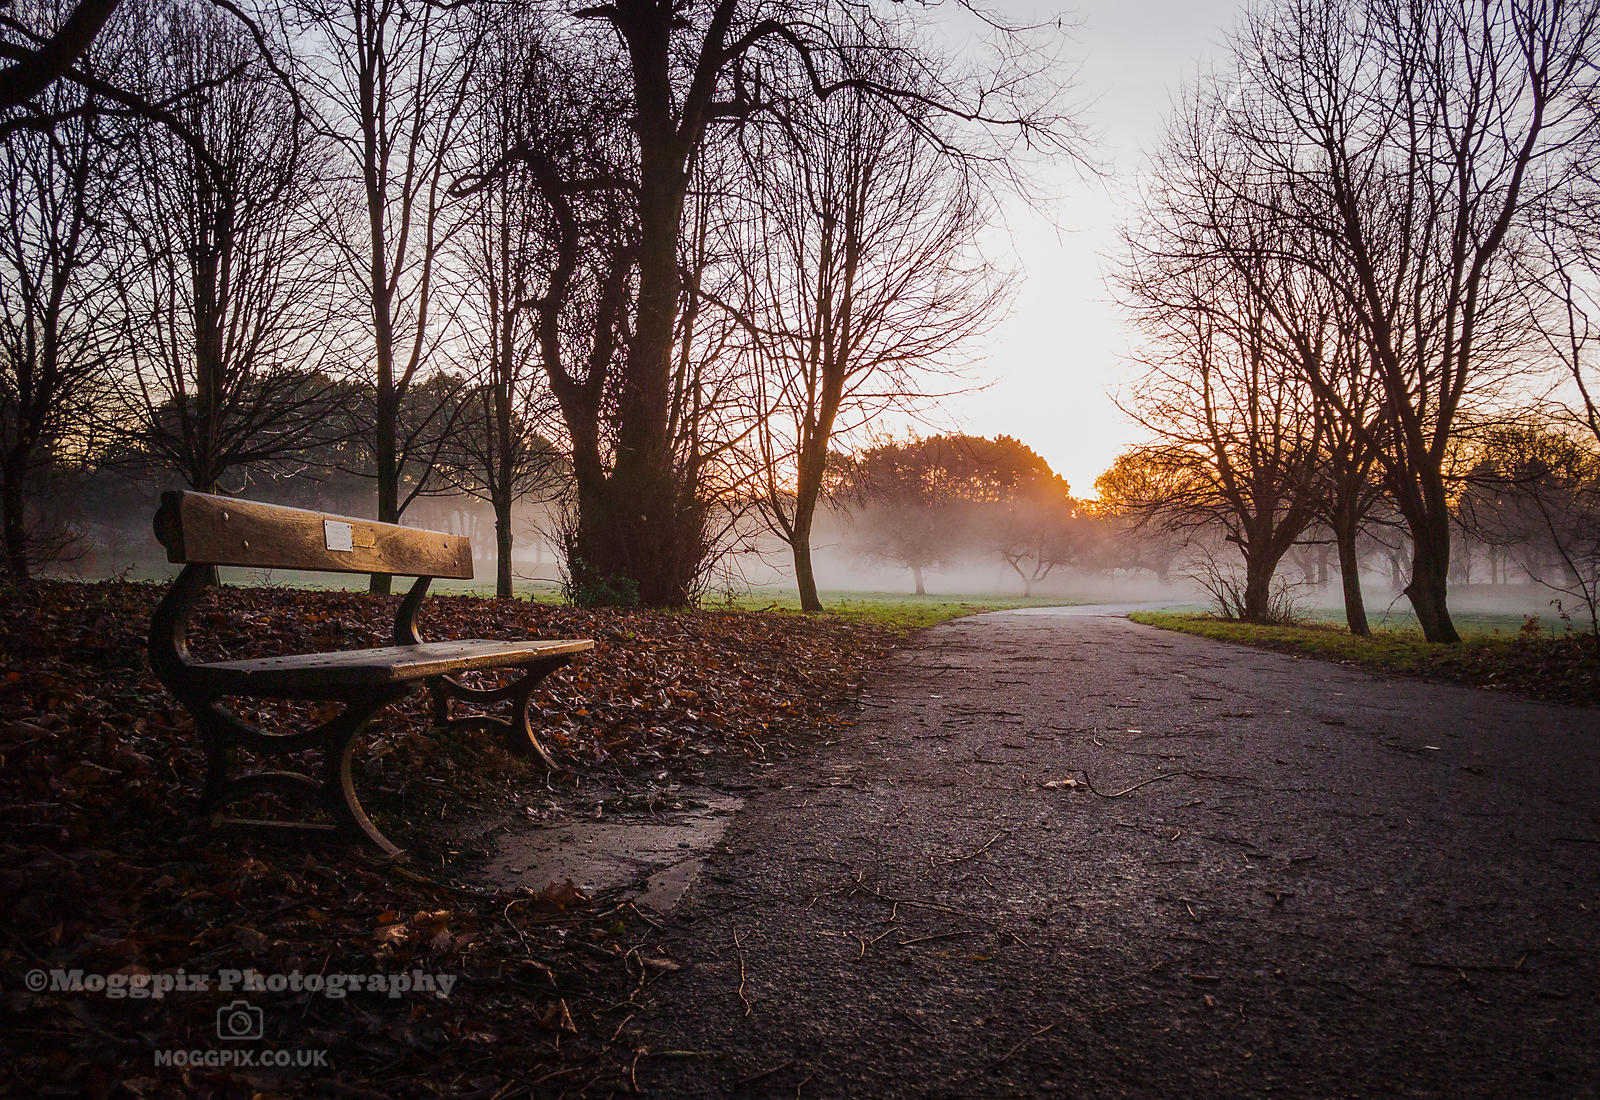 A Misty Morning in Sefton Park